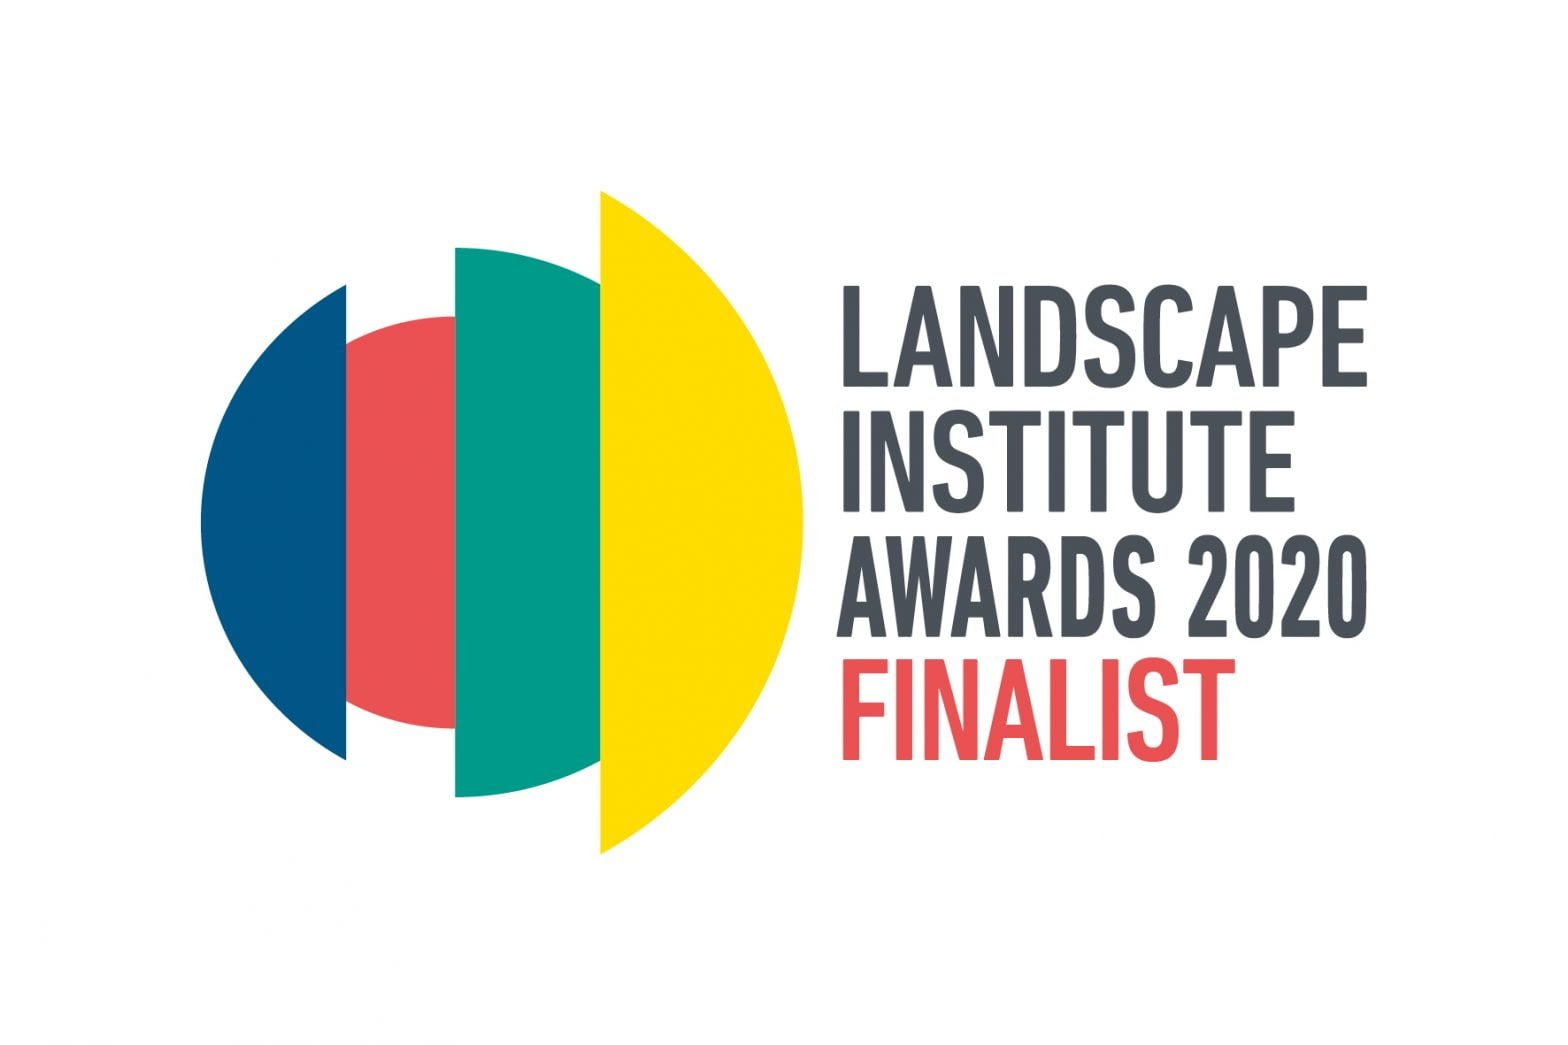 Landscape Institute Awards 2020